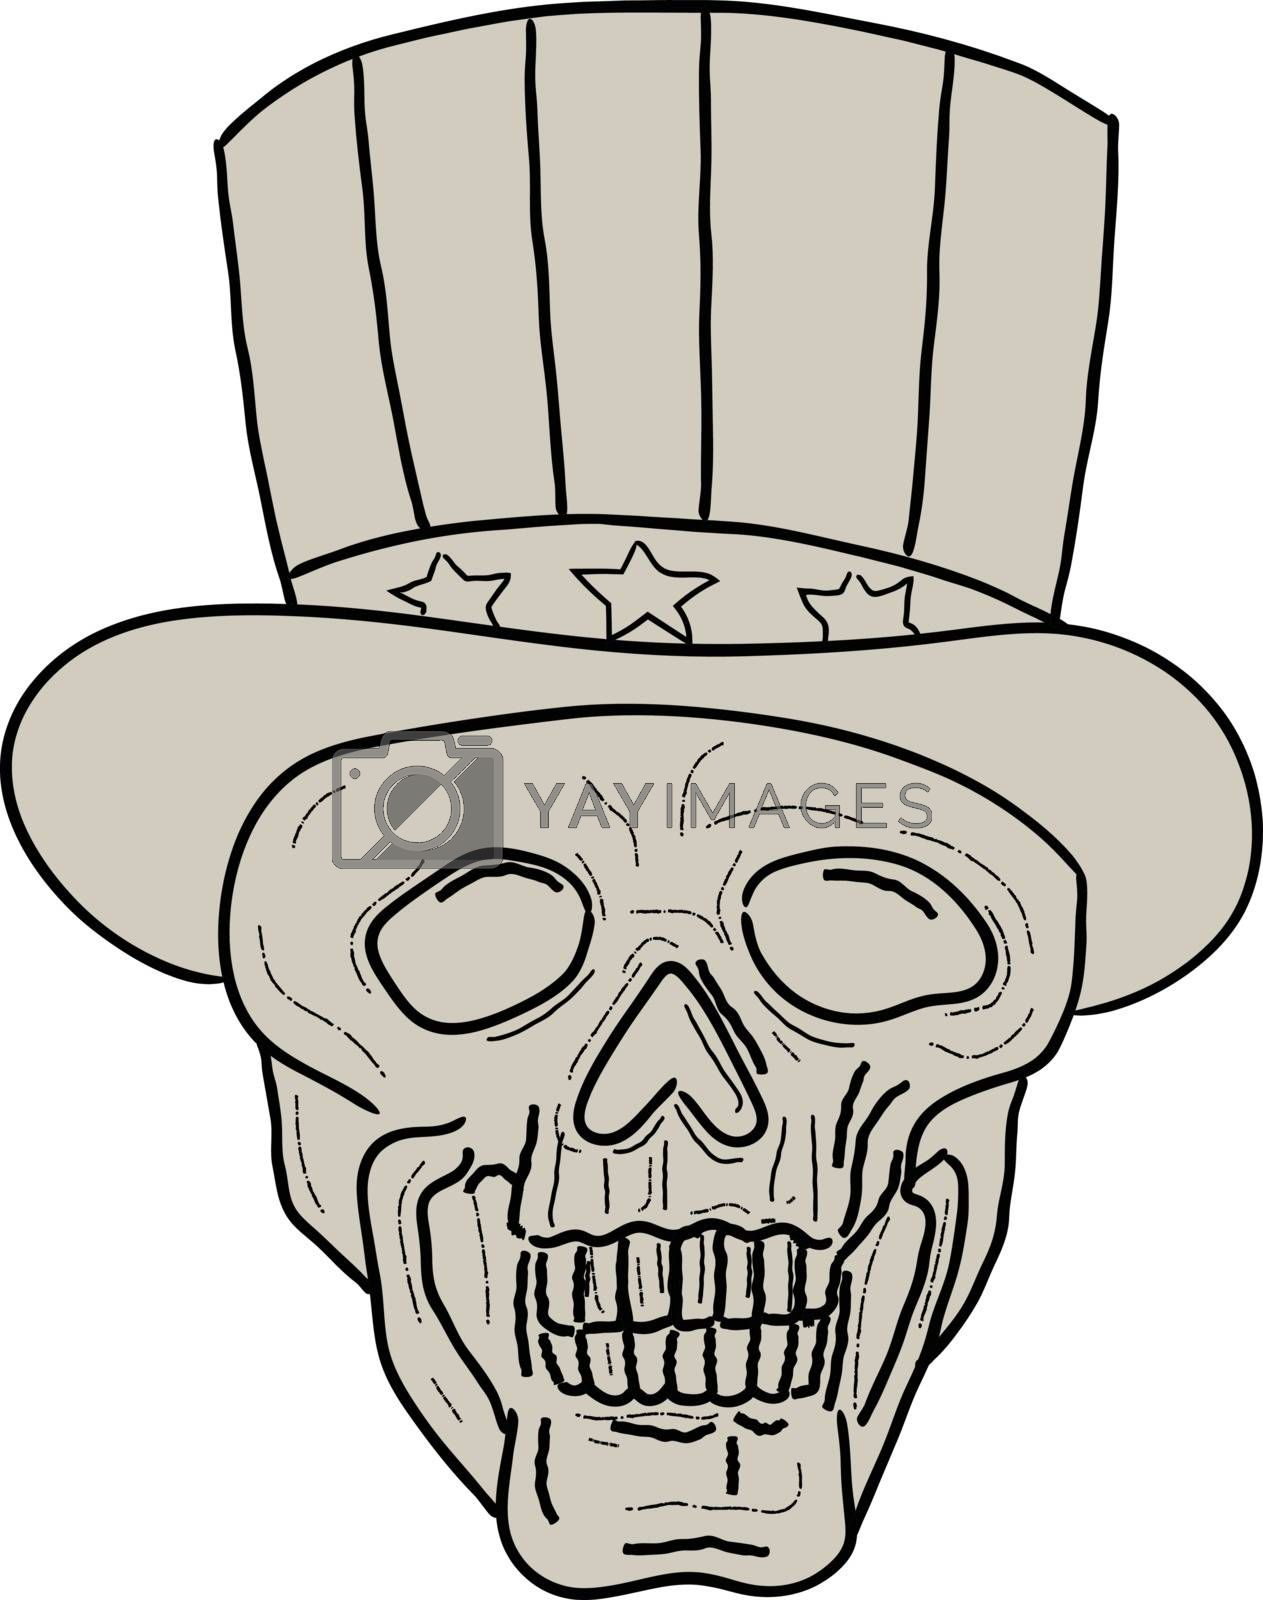 Drawing sketch style illustration of a skull of uncle sam wearing top hat viewed from front set on isolated white background.